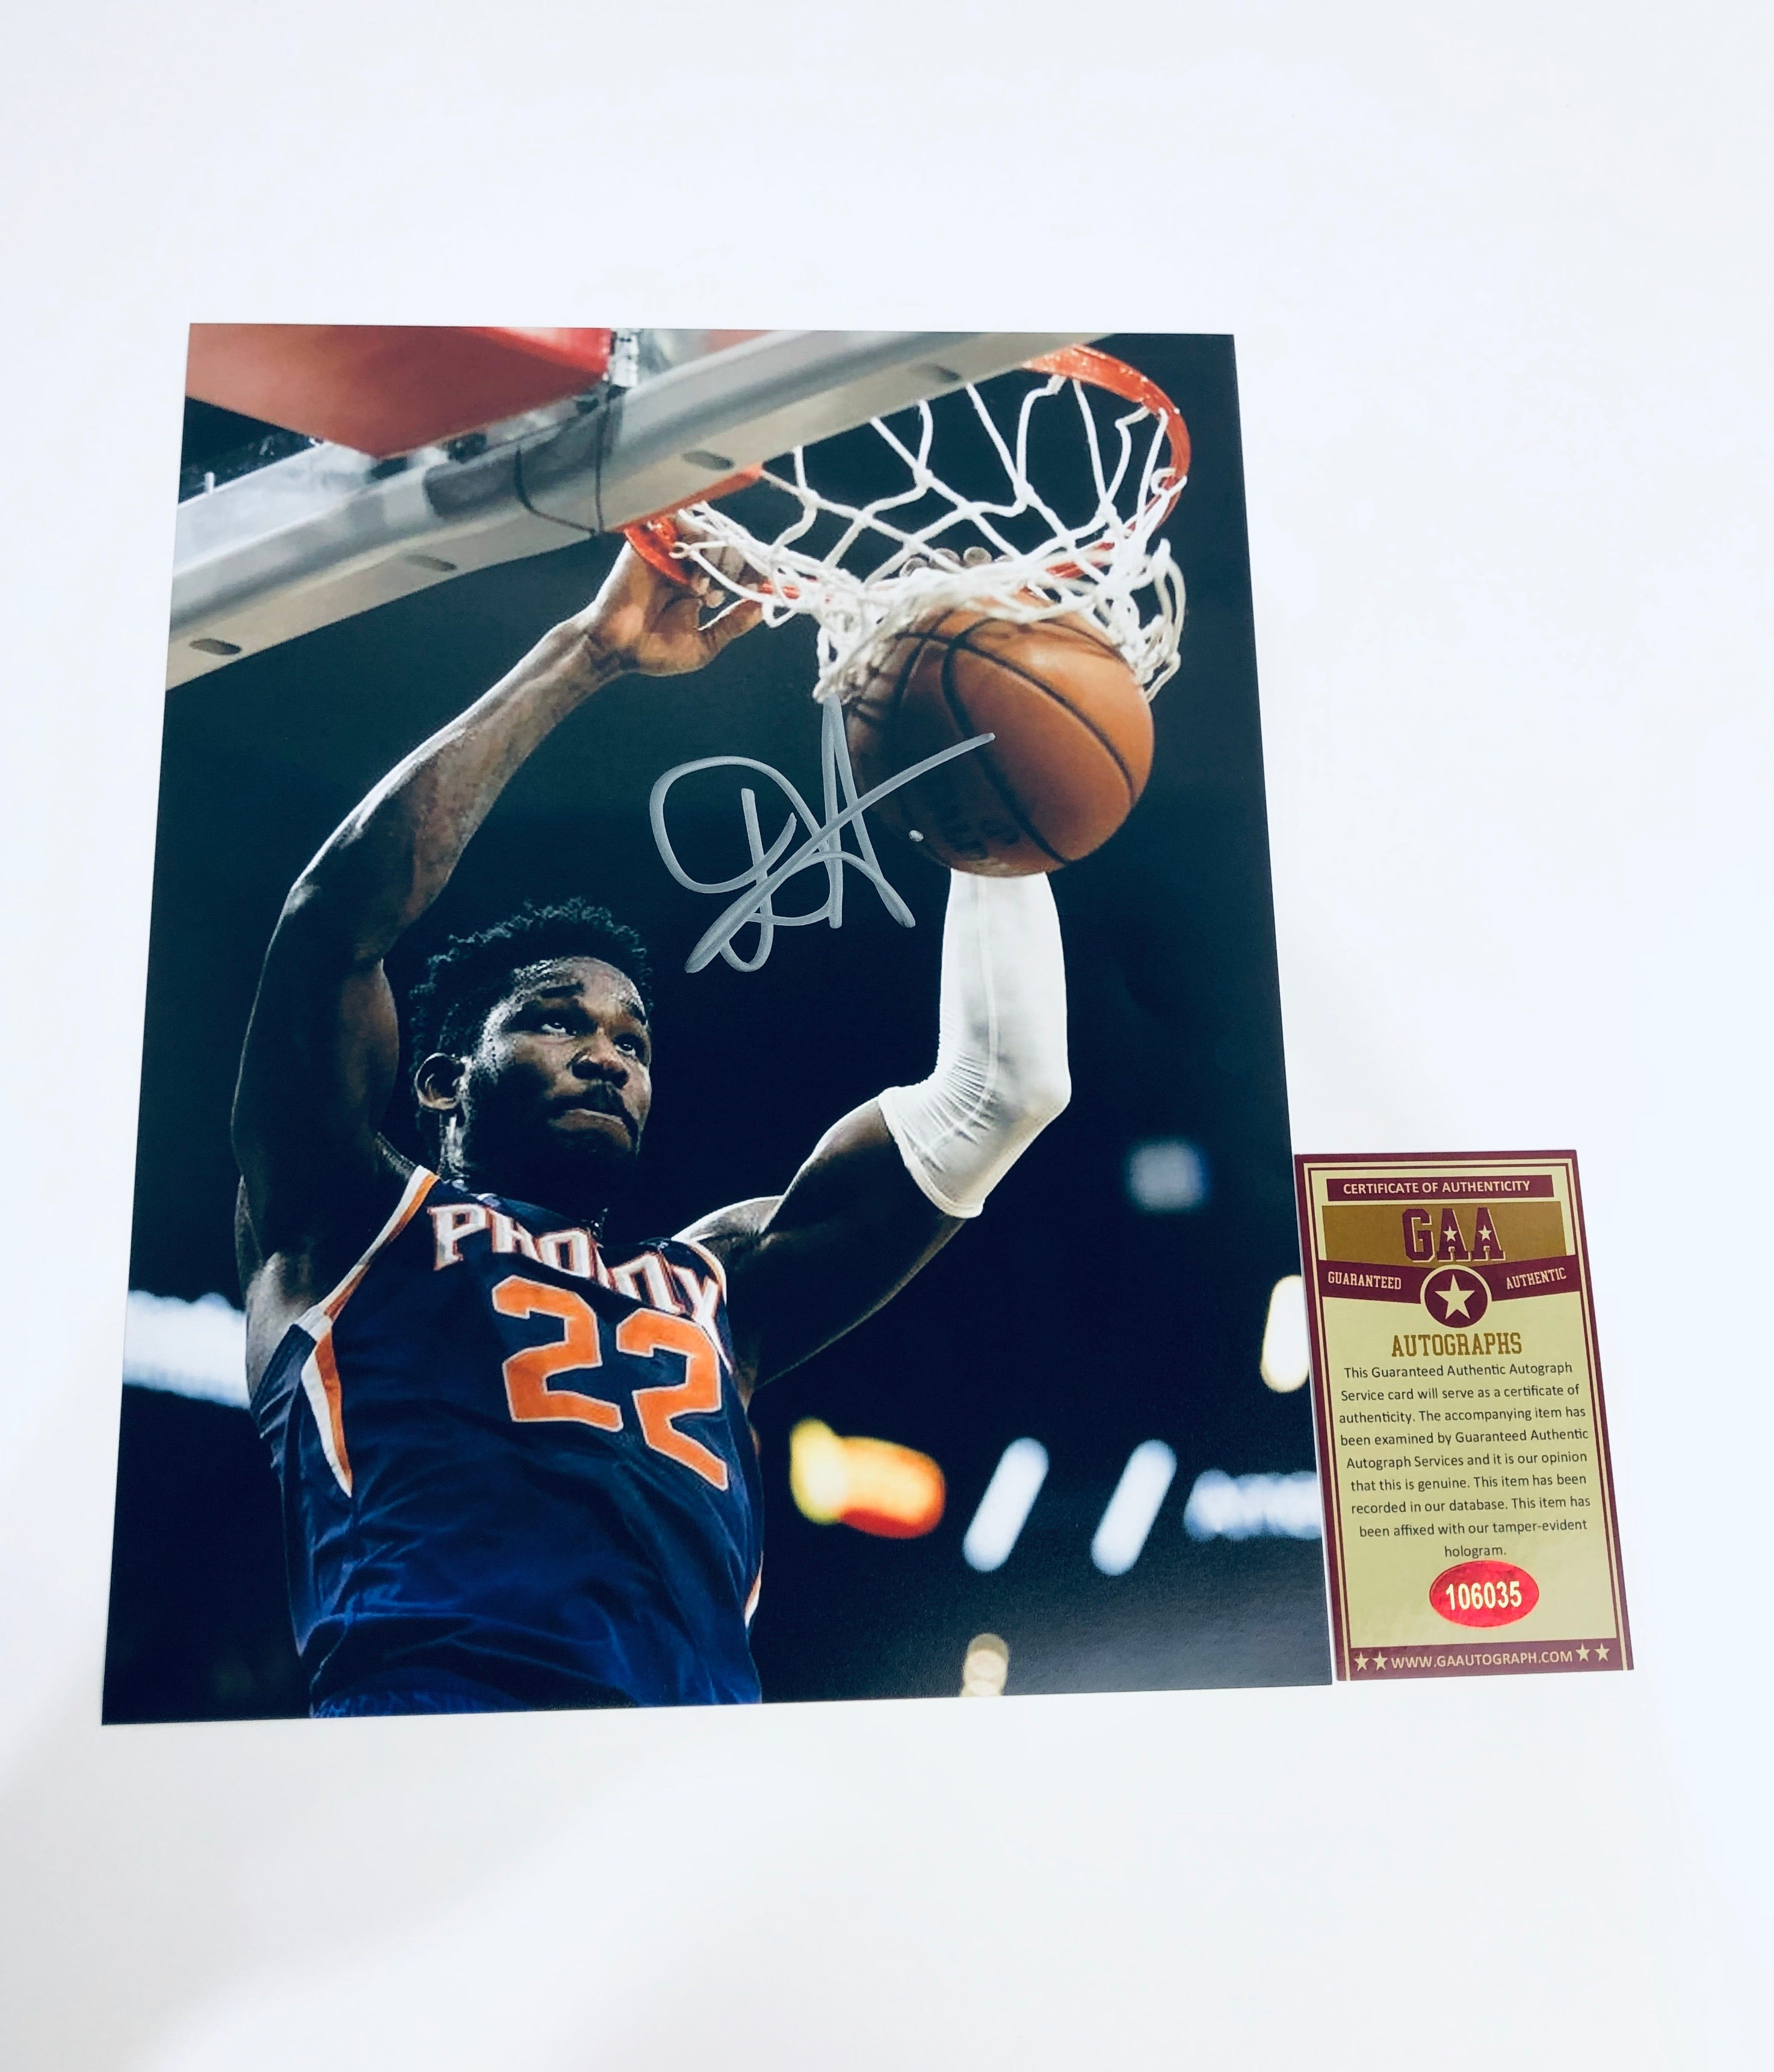 Deandre Ayton Autographed 8x10 Photo With COA